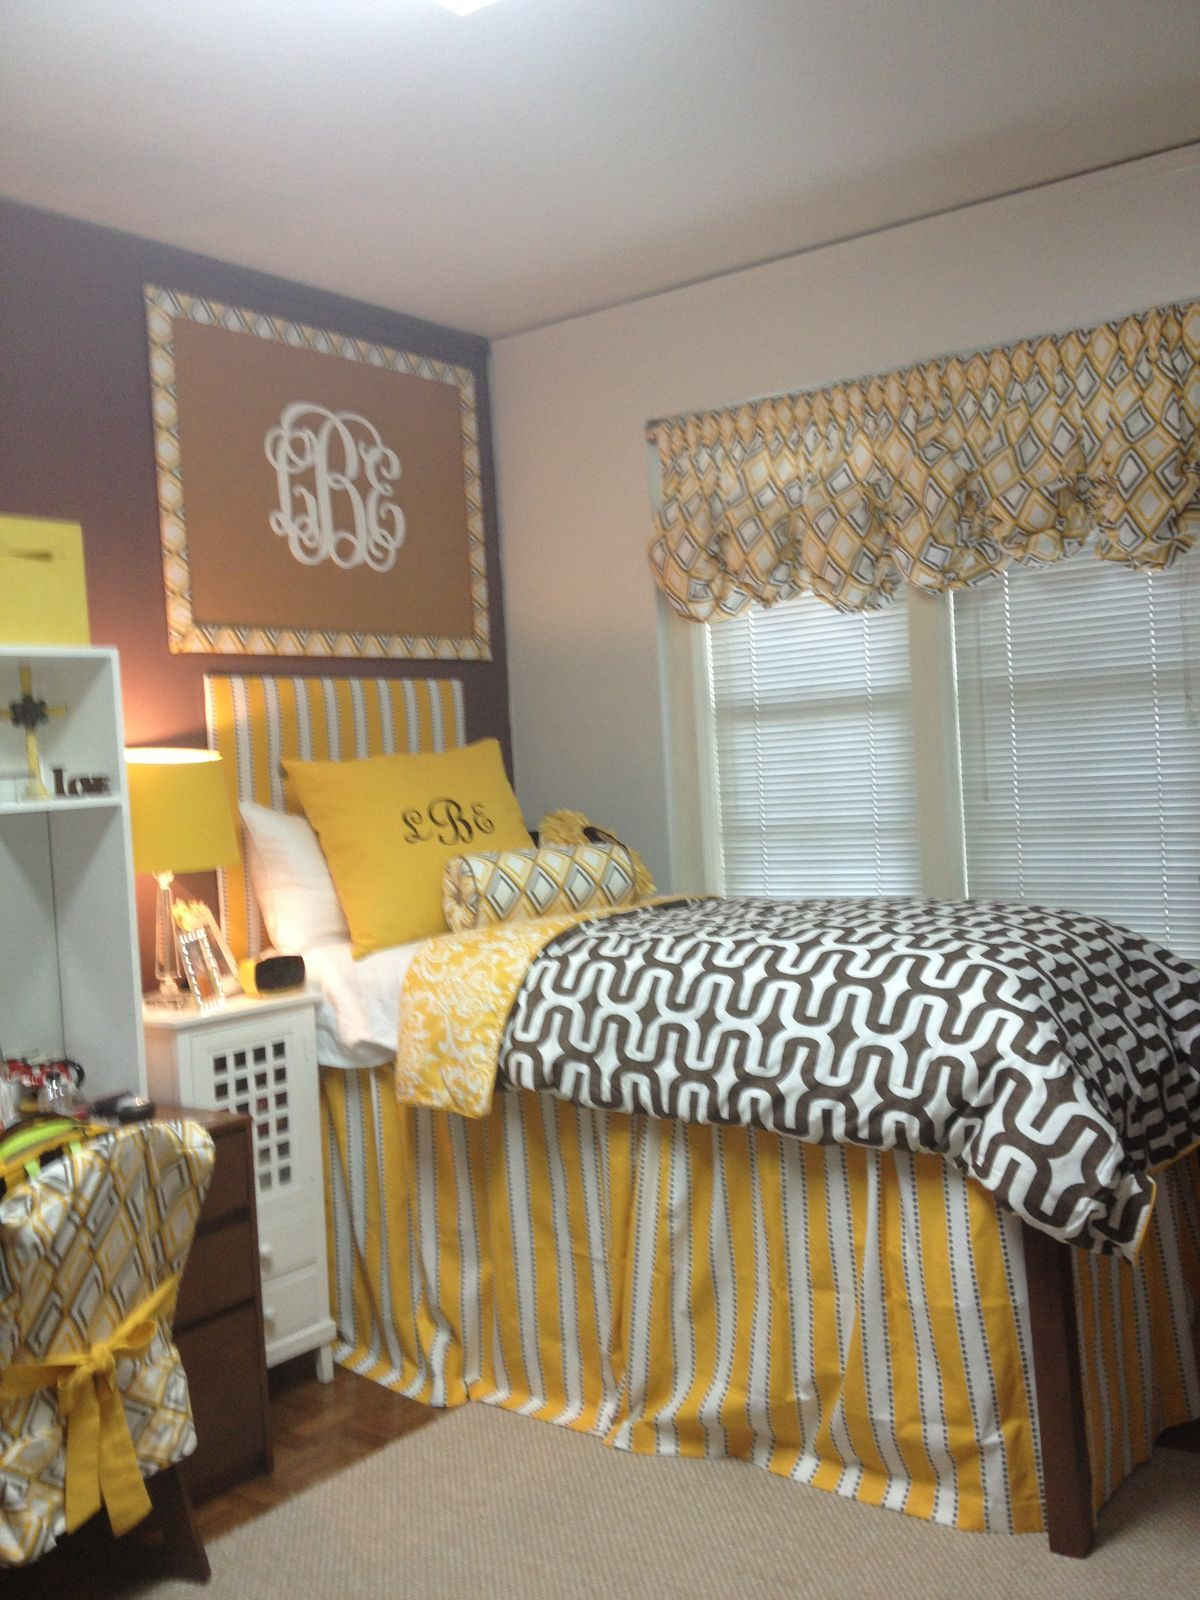 Pin by Wendy Brown on My Style College room, Dorm room